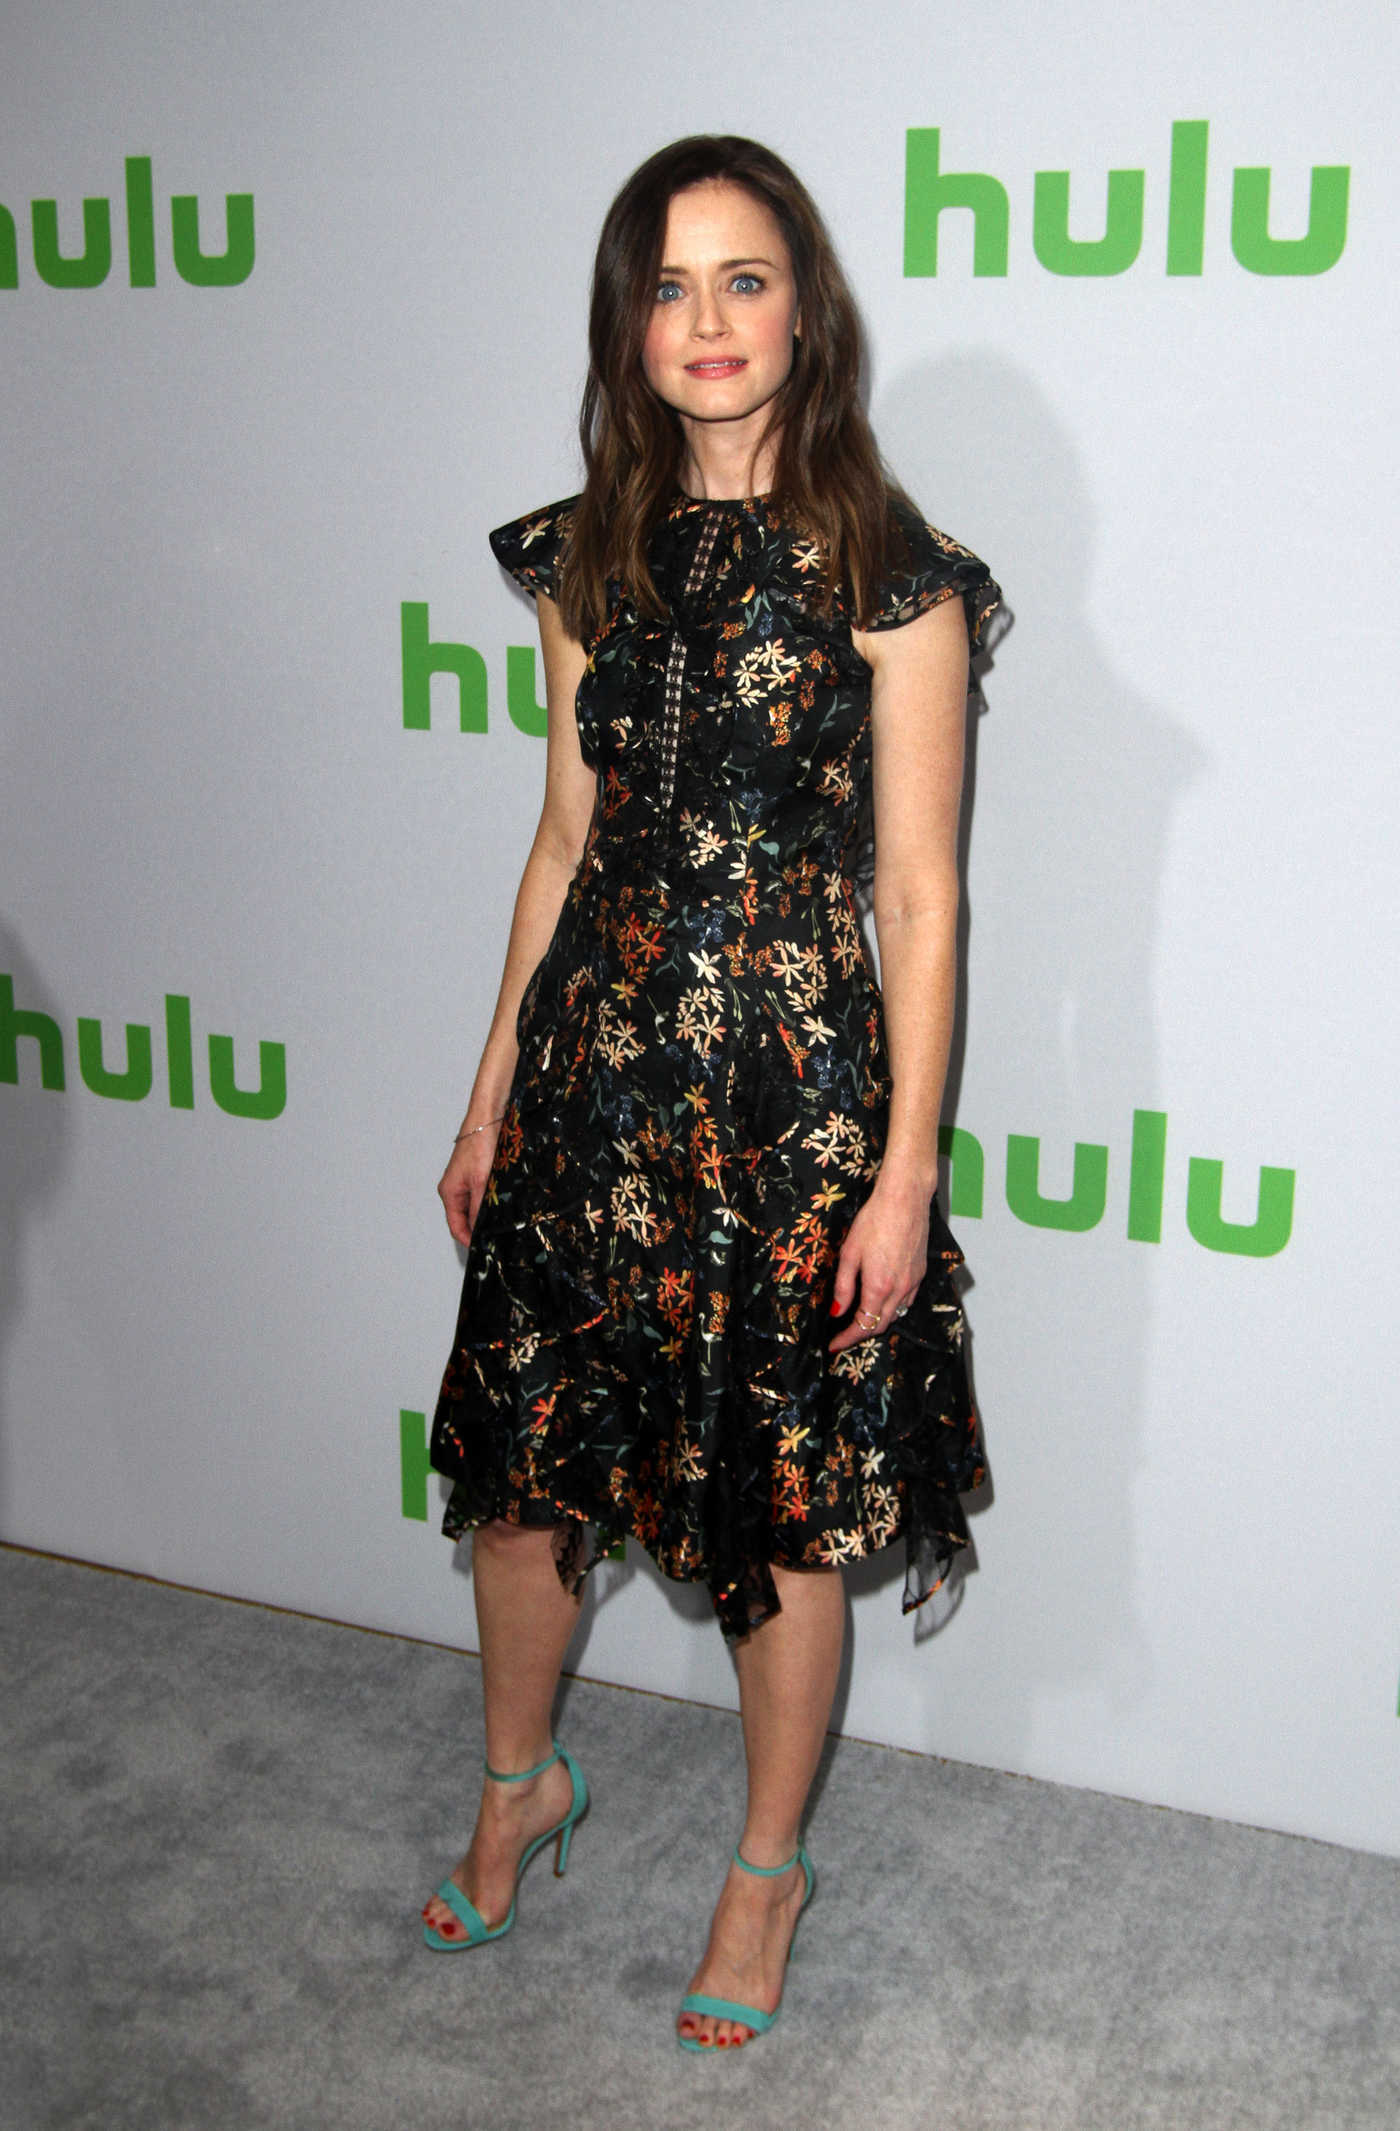 Alexis Bledel at the Hulu's Winter TCA 2017 in Los Angeles 01/07/2017